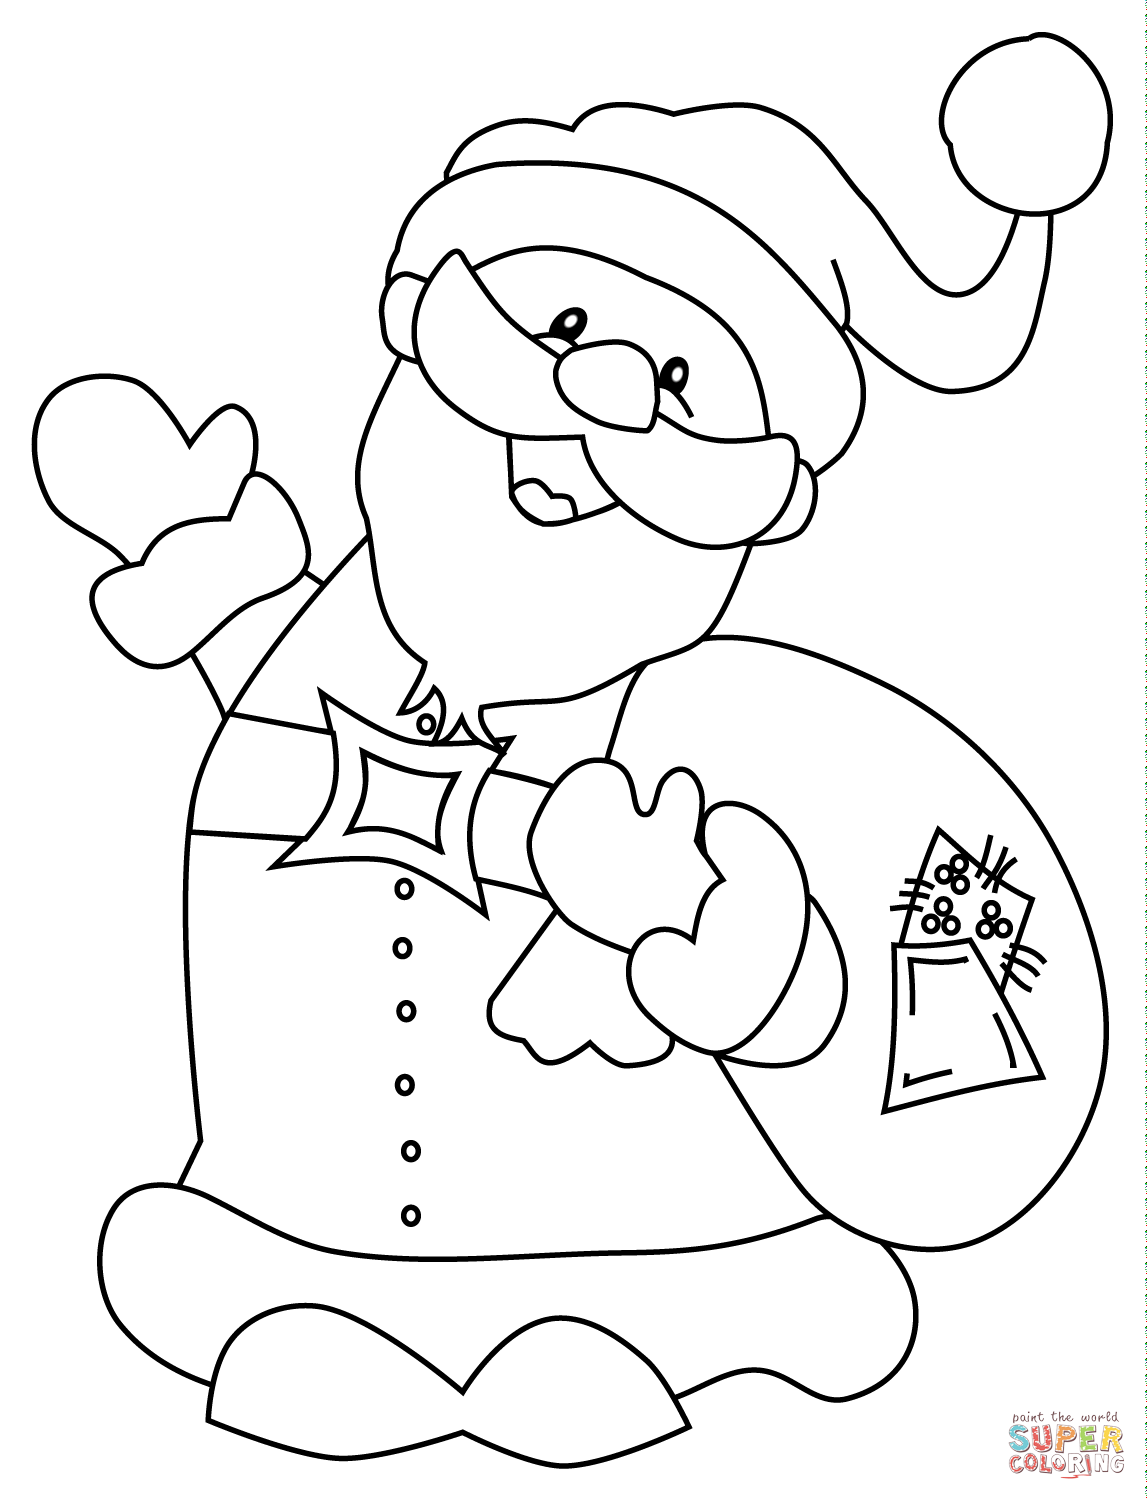 Santa Claus Mobile Az Coloring Pages Sketch Coloring Page